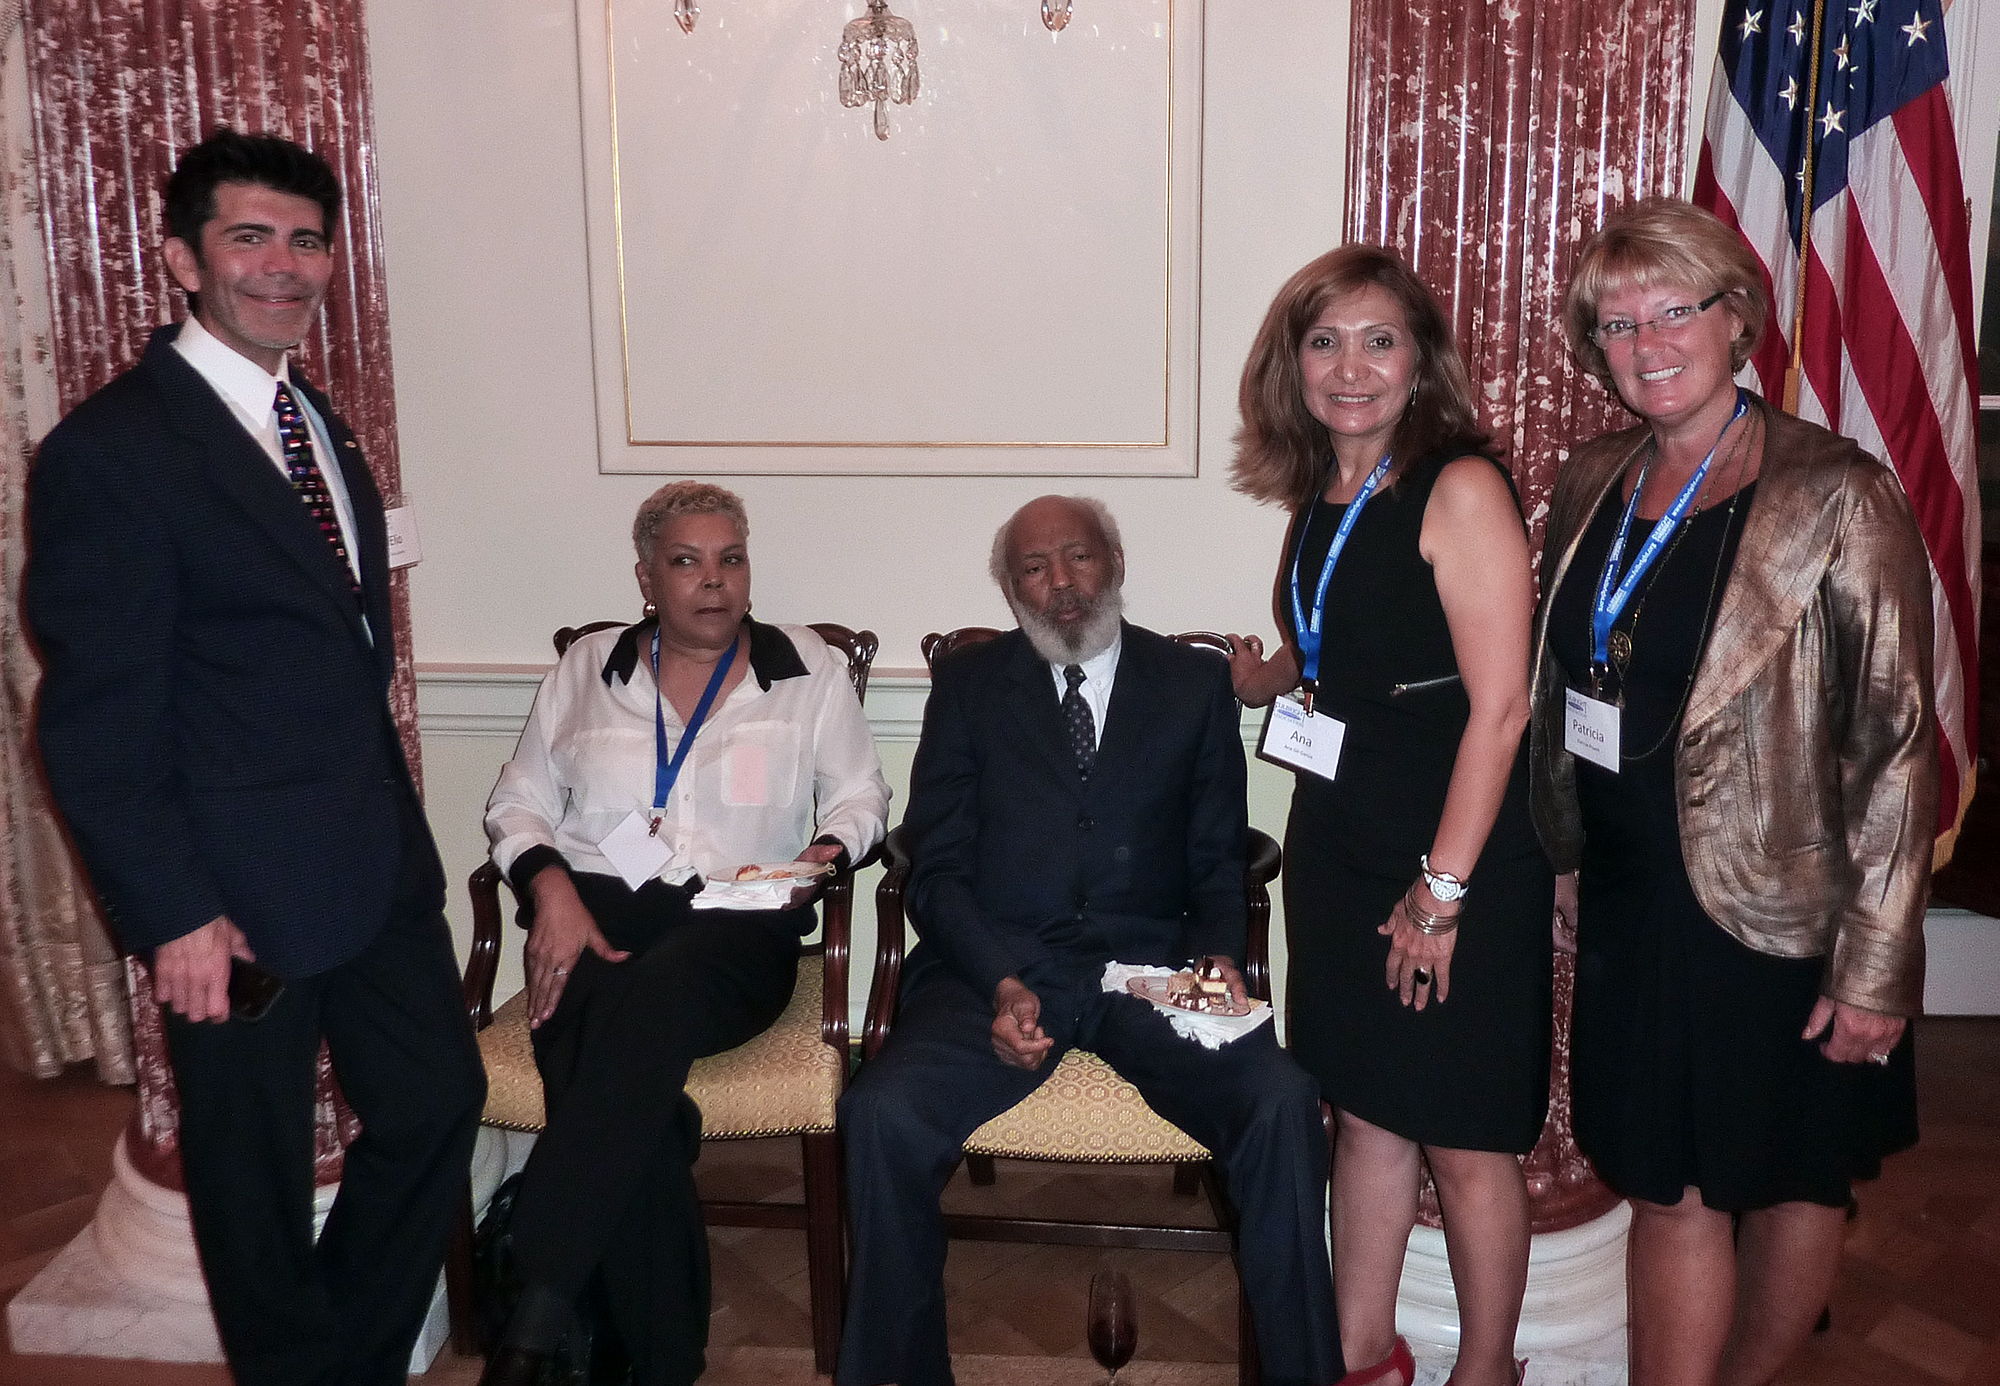 Elio Leturia, Judy Meredith, James Meredith, Ana GIl-García and Patti Powell